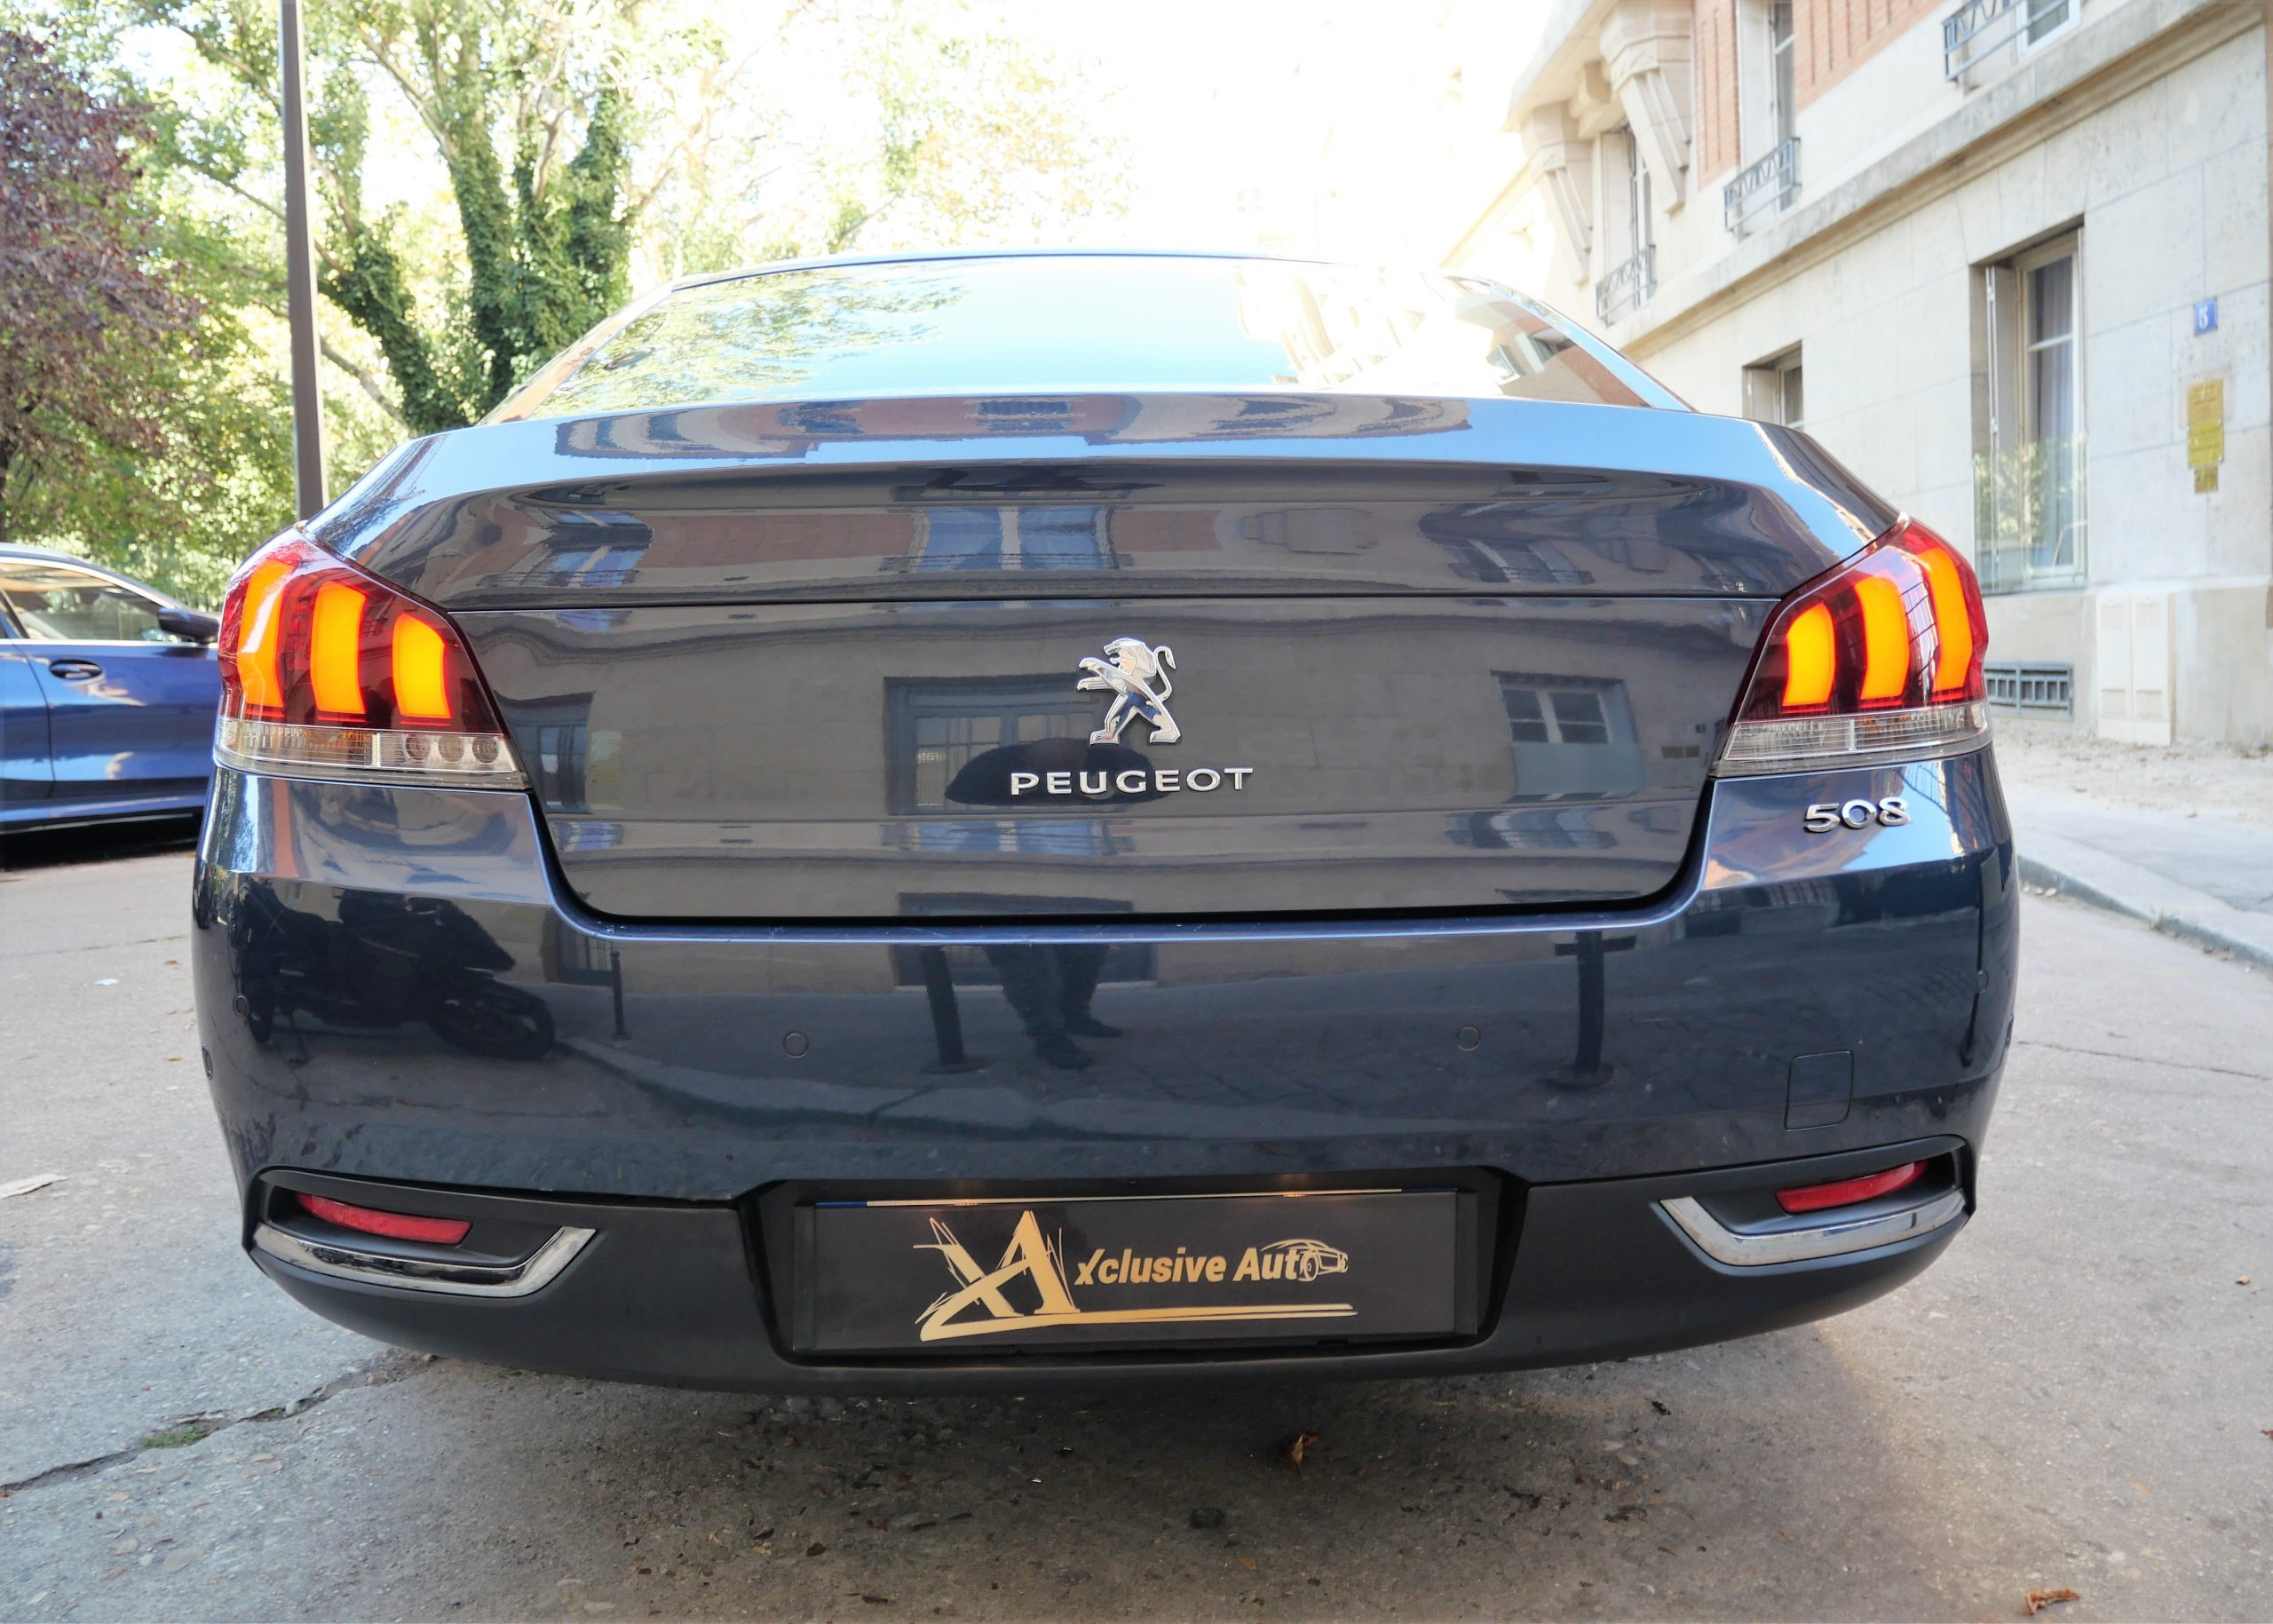 PEUGEOT 508 Allure Phase 2 1.6 BlueHDI S&S 120 ch 3